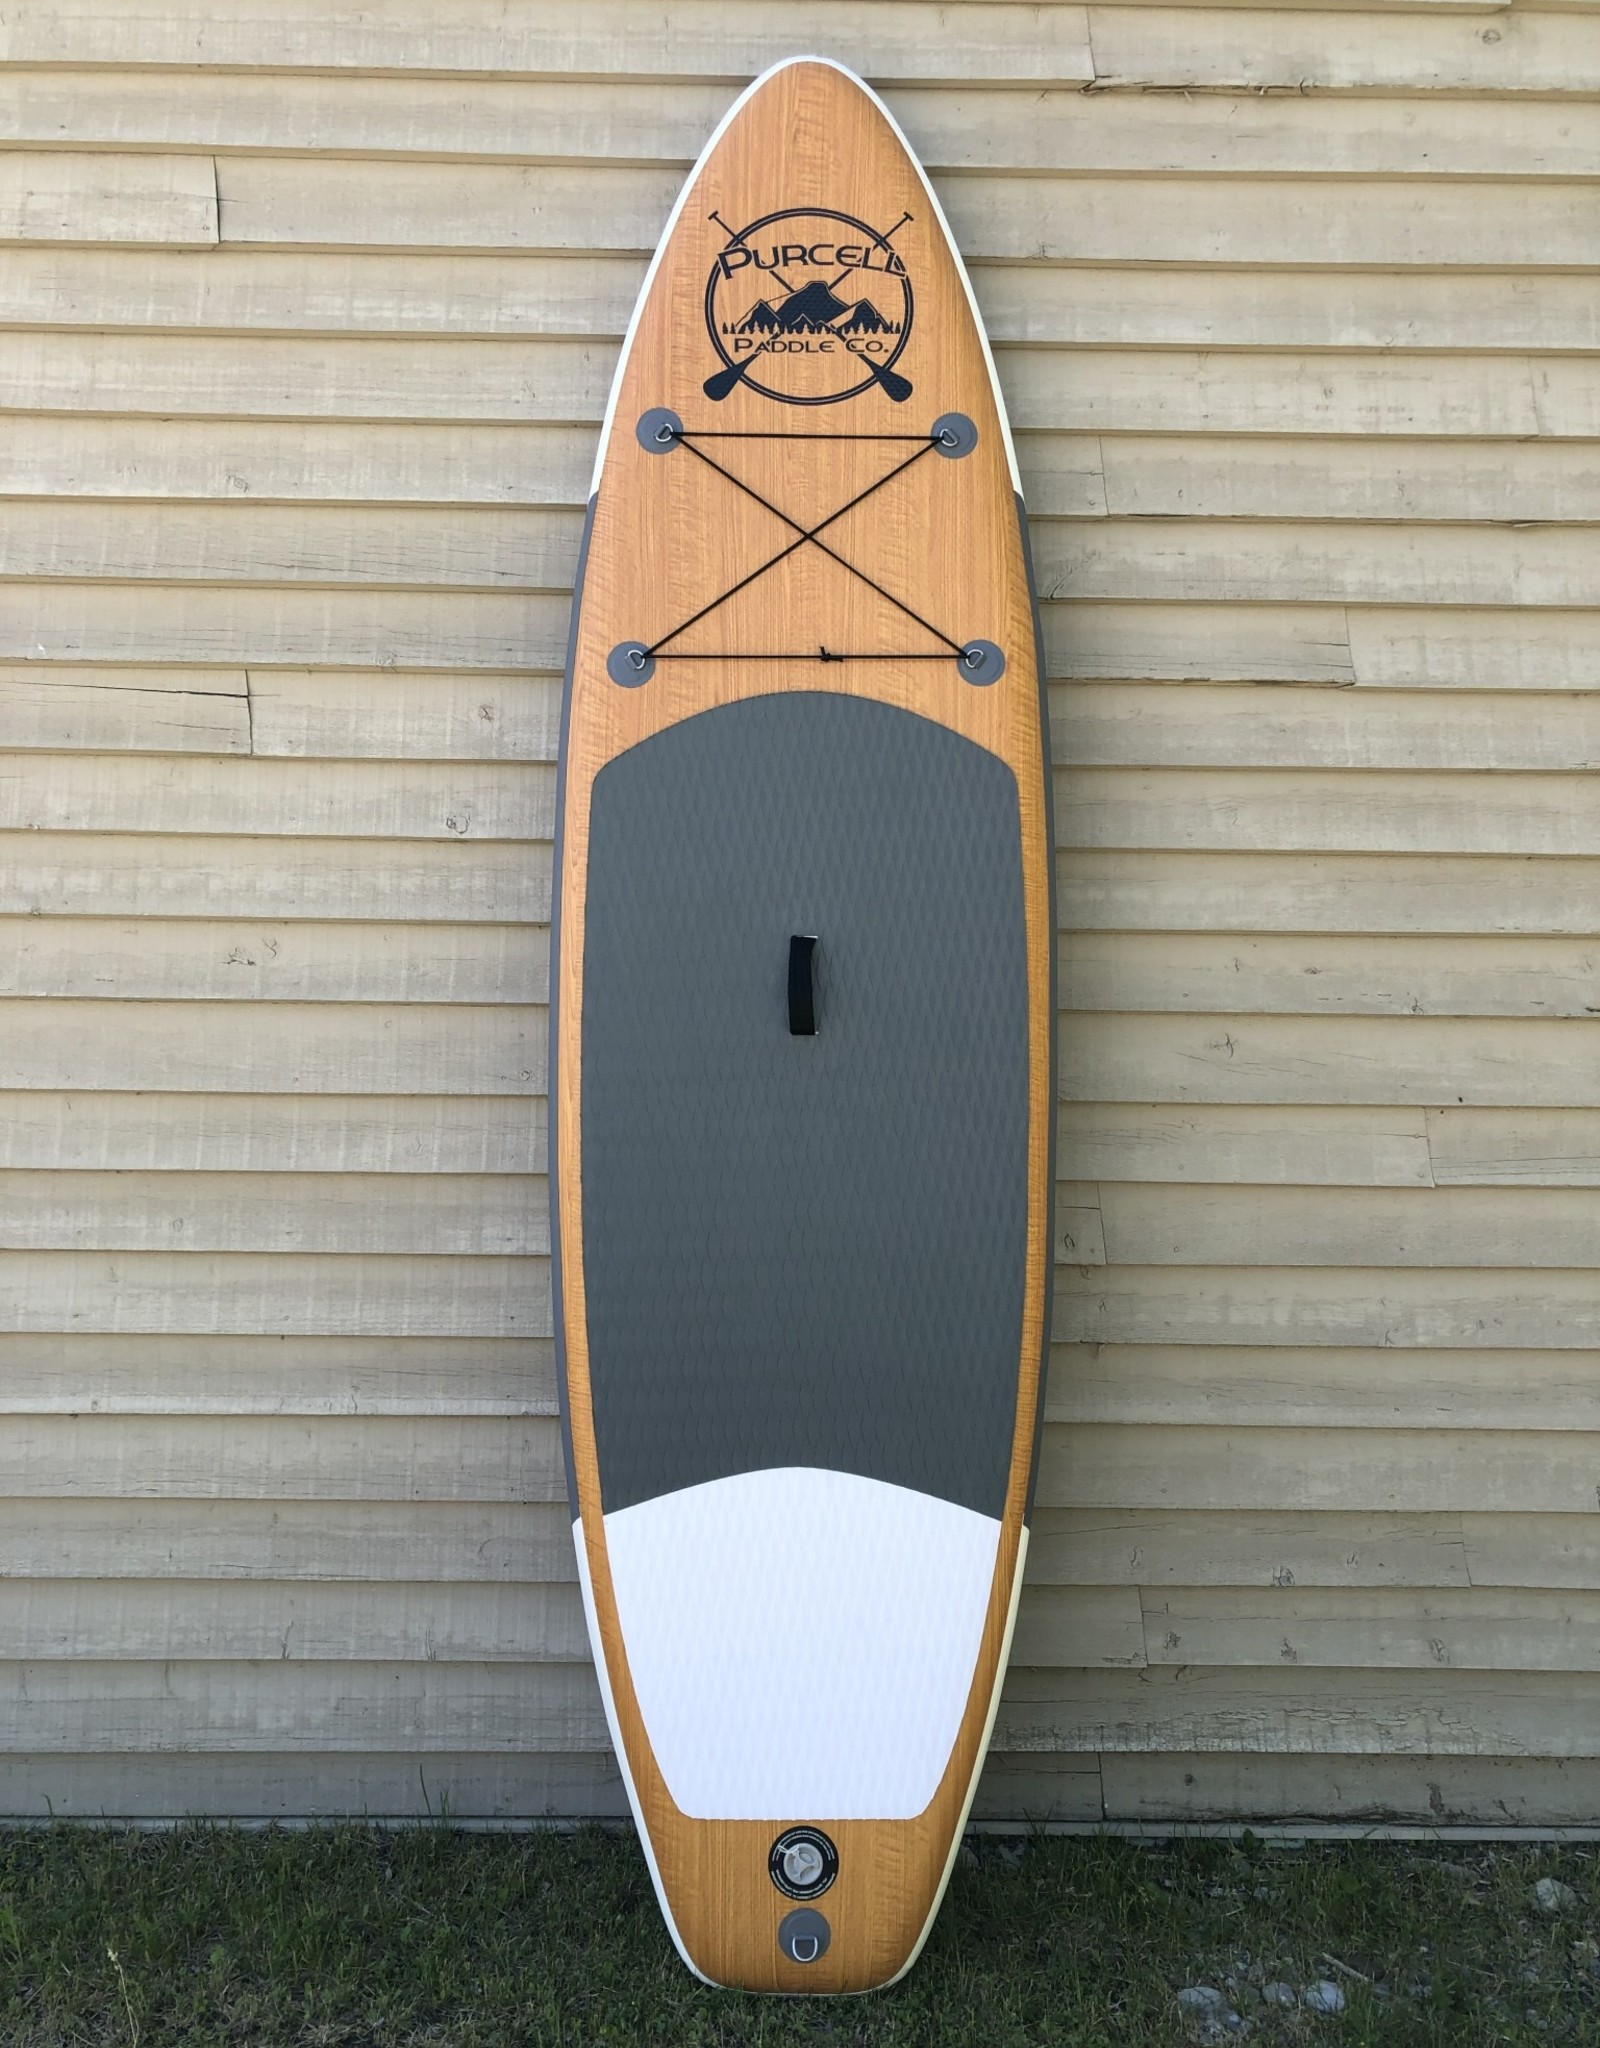 "Syndicate PURCELL PADDLE CO - All Around iSUP Pkg (Board/Pump/Bag/Paddle) - 10'6"" x 34"" x 6"""